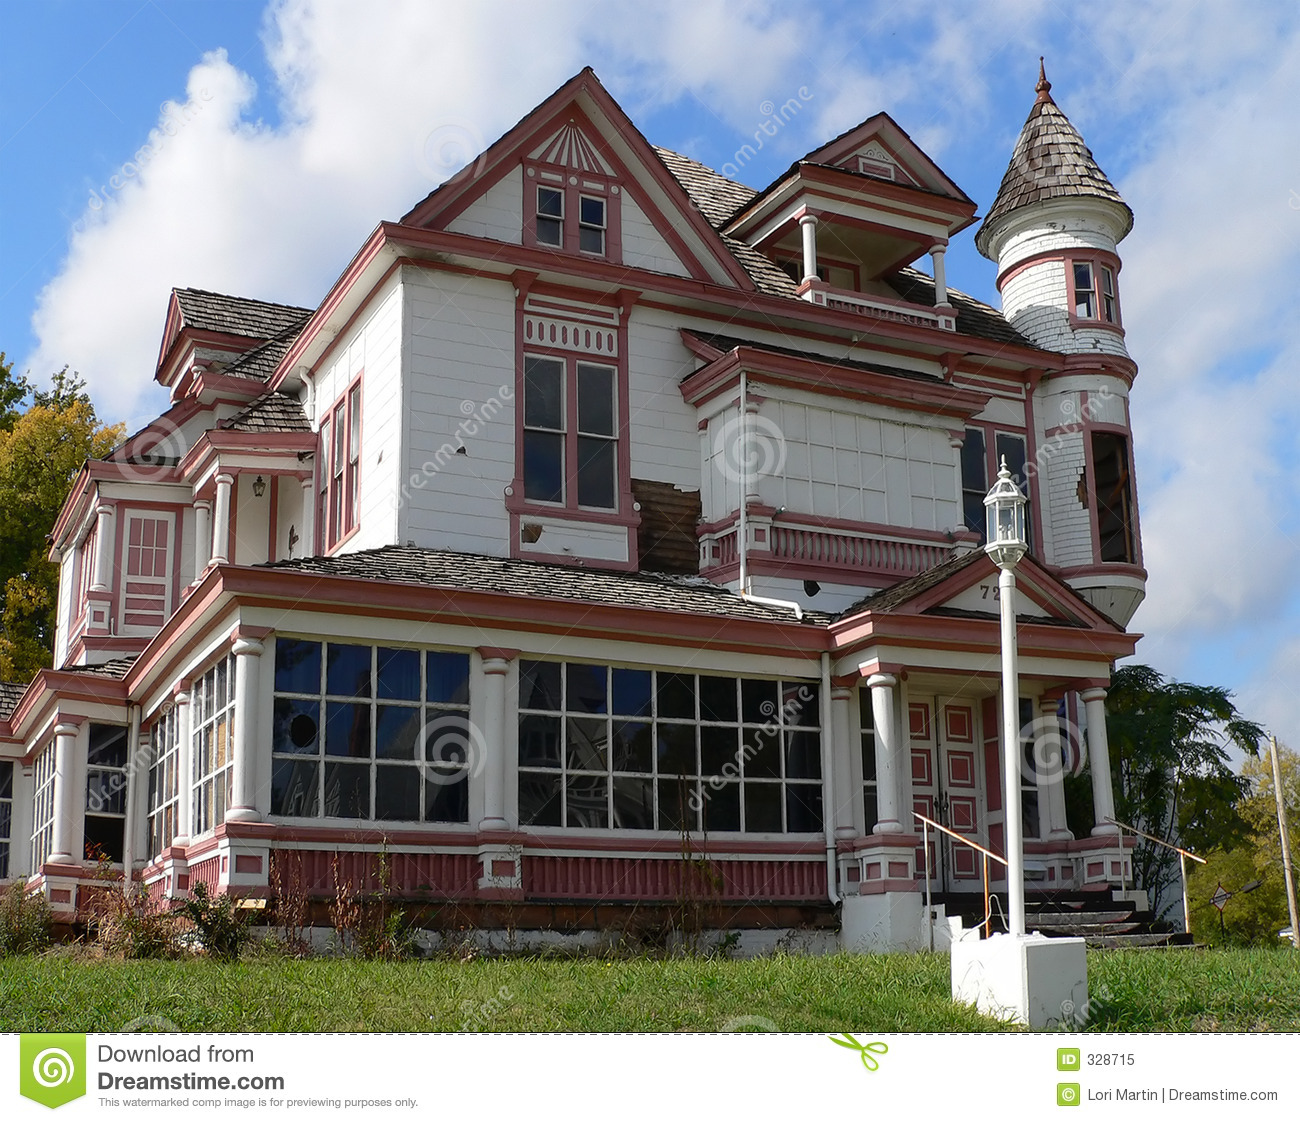 Abandoned Victorian House Stock Image. Image Of Historic